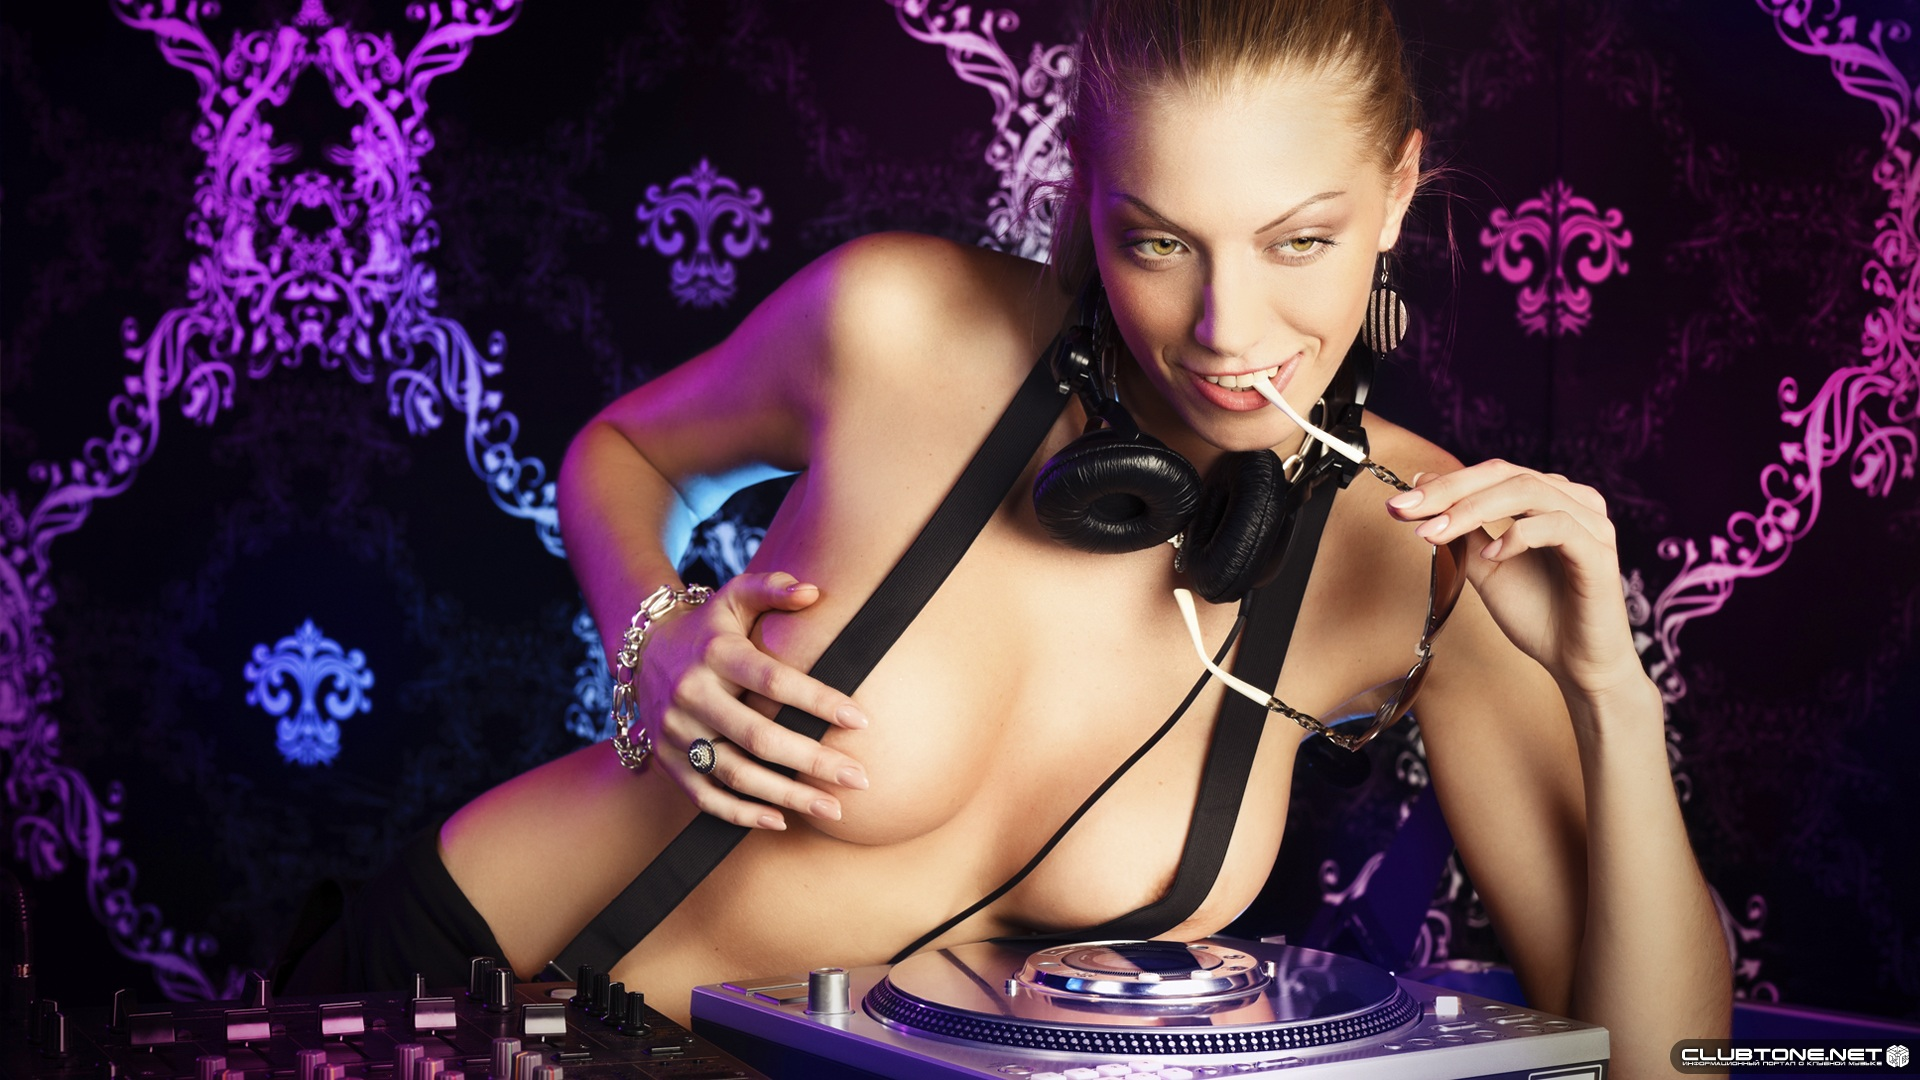 playful dj Girl</a></noi Girl